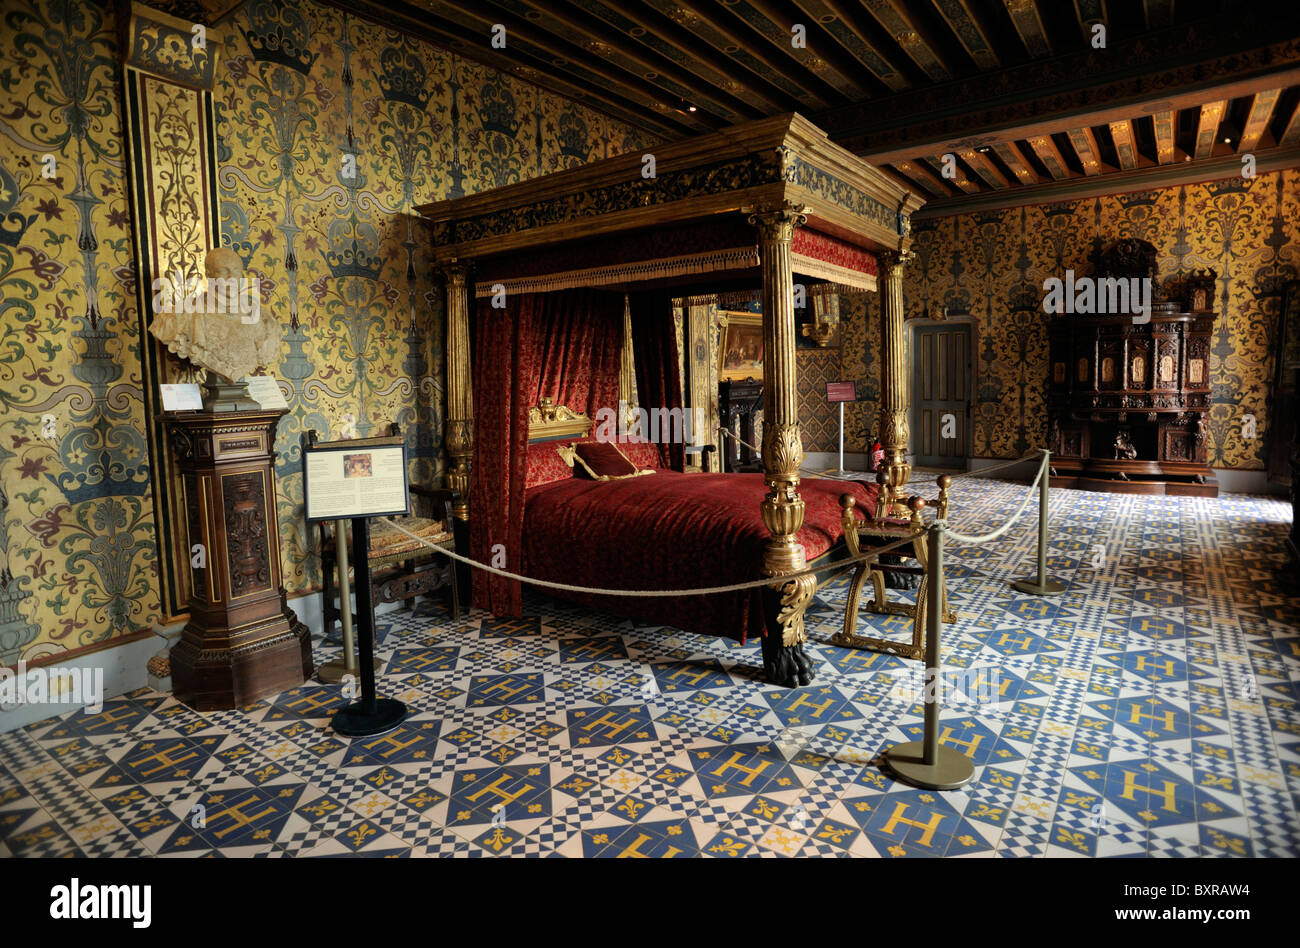 France, Loire Valley, Blois, Castle Interior, King Henri III Bedroom   Stock